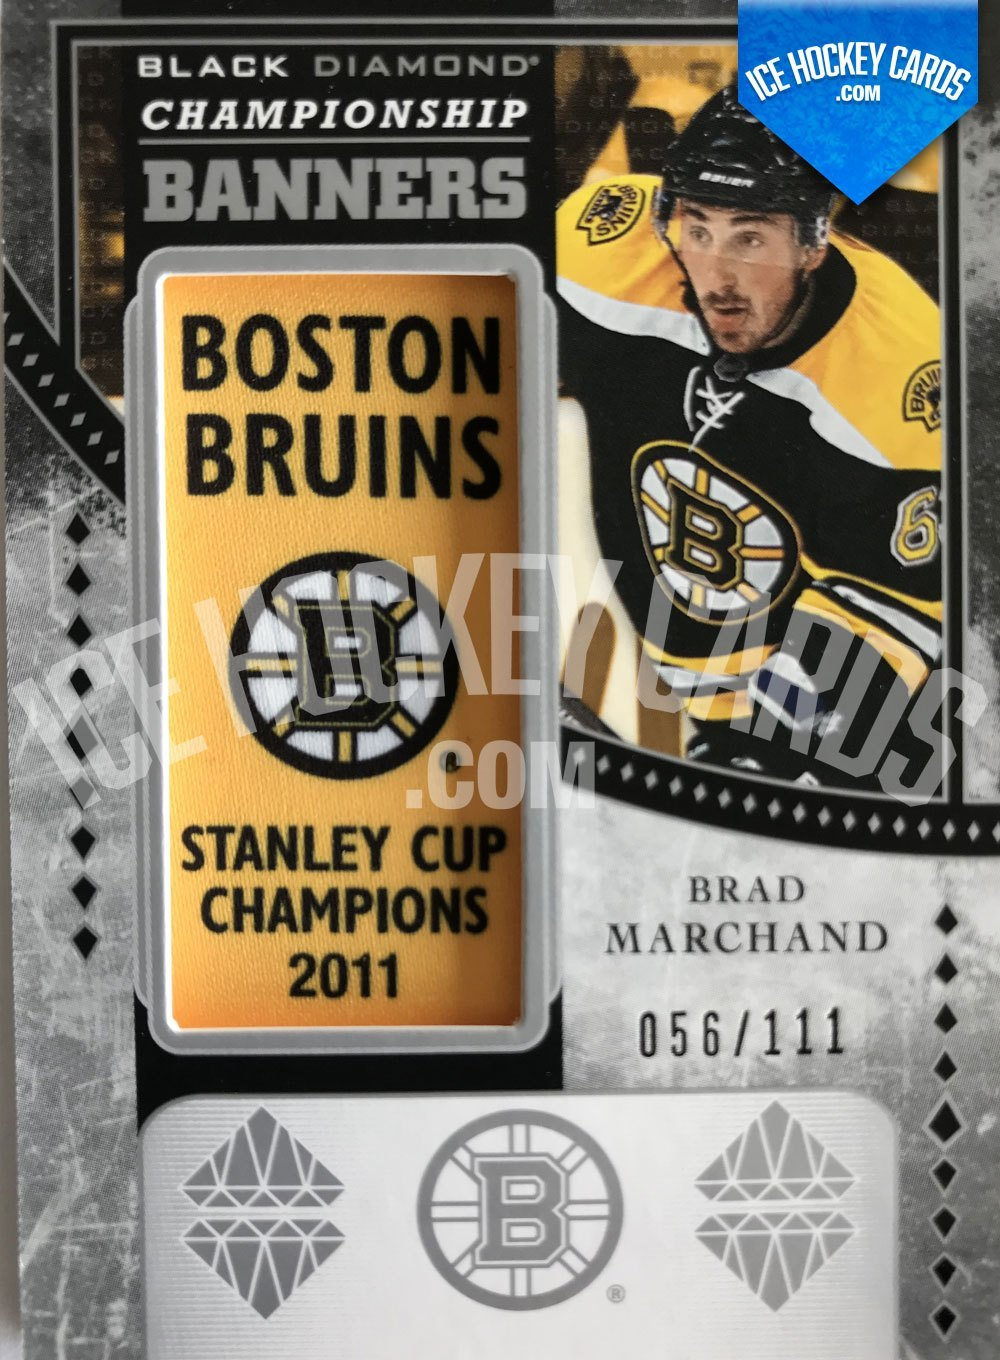 Upper Deck - Black Diamond 19-20 - Brad Marchand Championship Banners Boston Bruins 2011